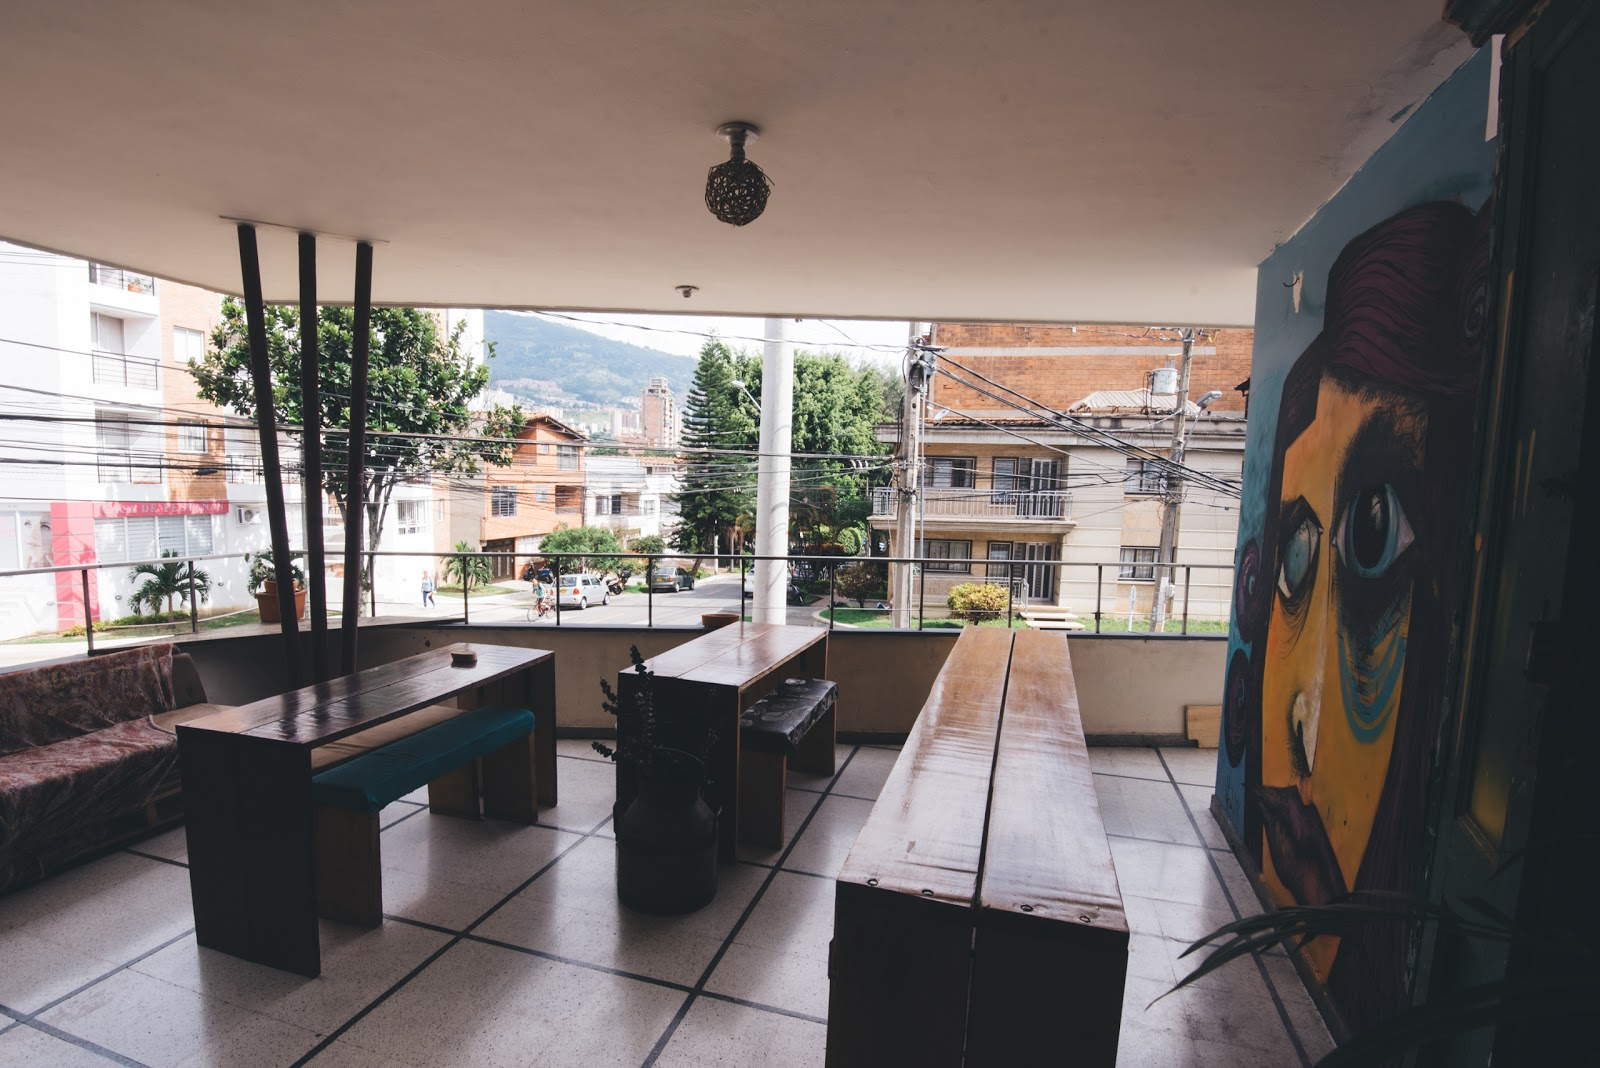 Café Ondas: A Work-Friendly Place in Medellin